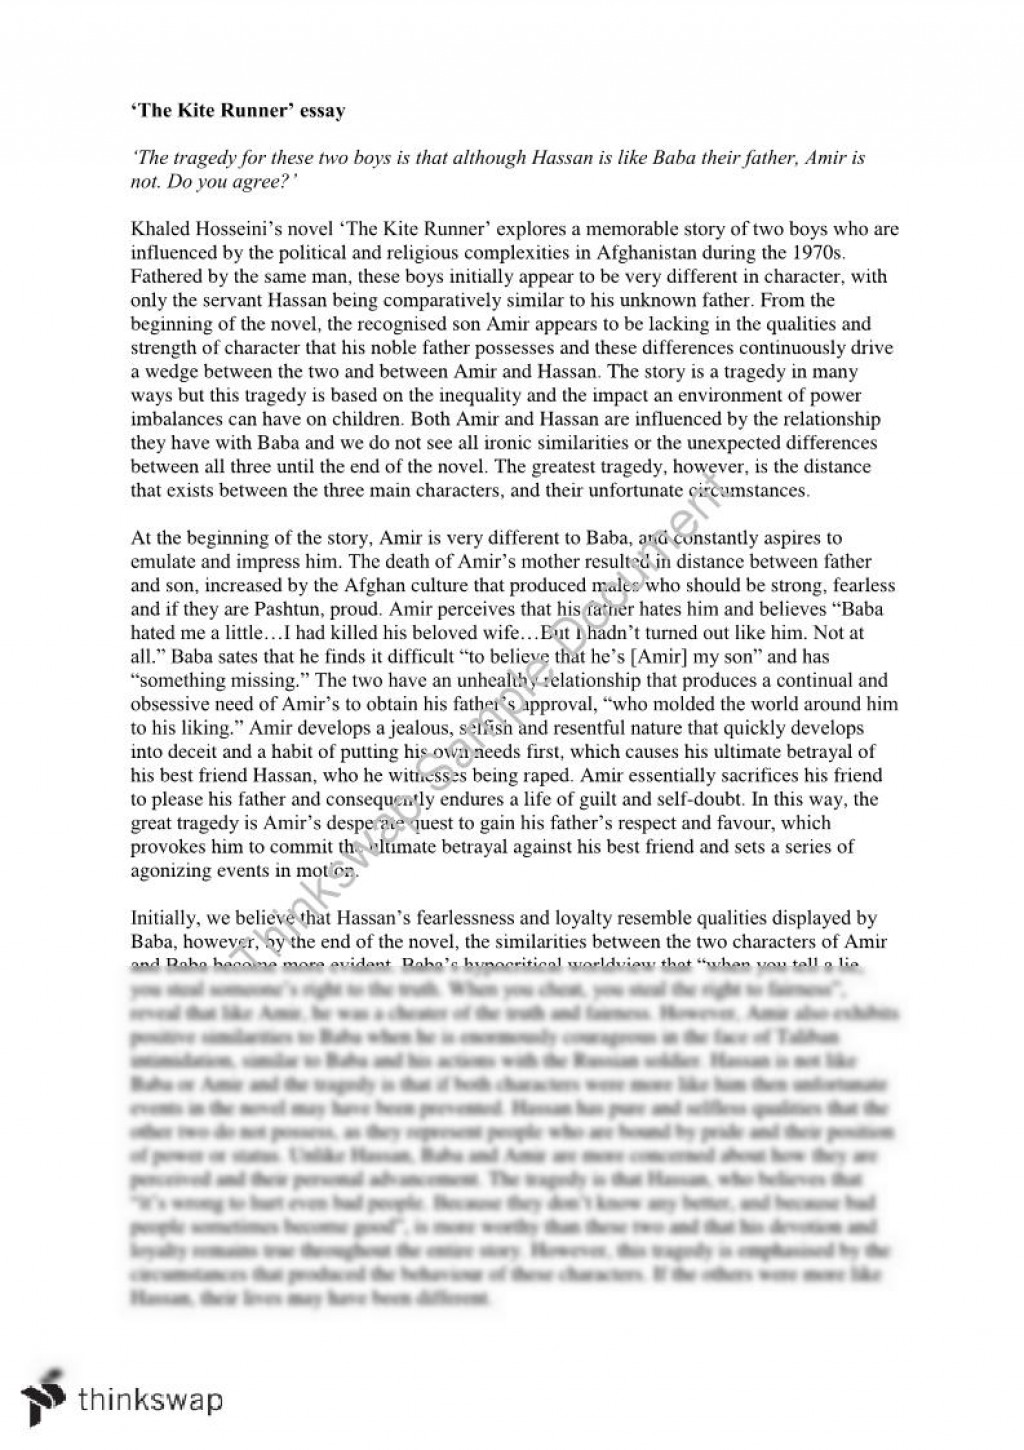 001 Kite Runner Essay 64447 The Fadded31 Singular Topics Discussion Questions Chapter 22 Large